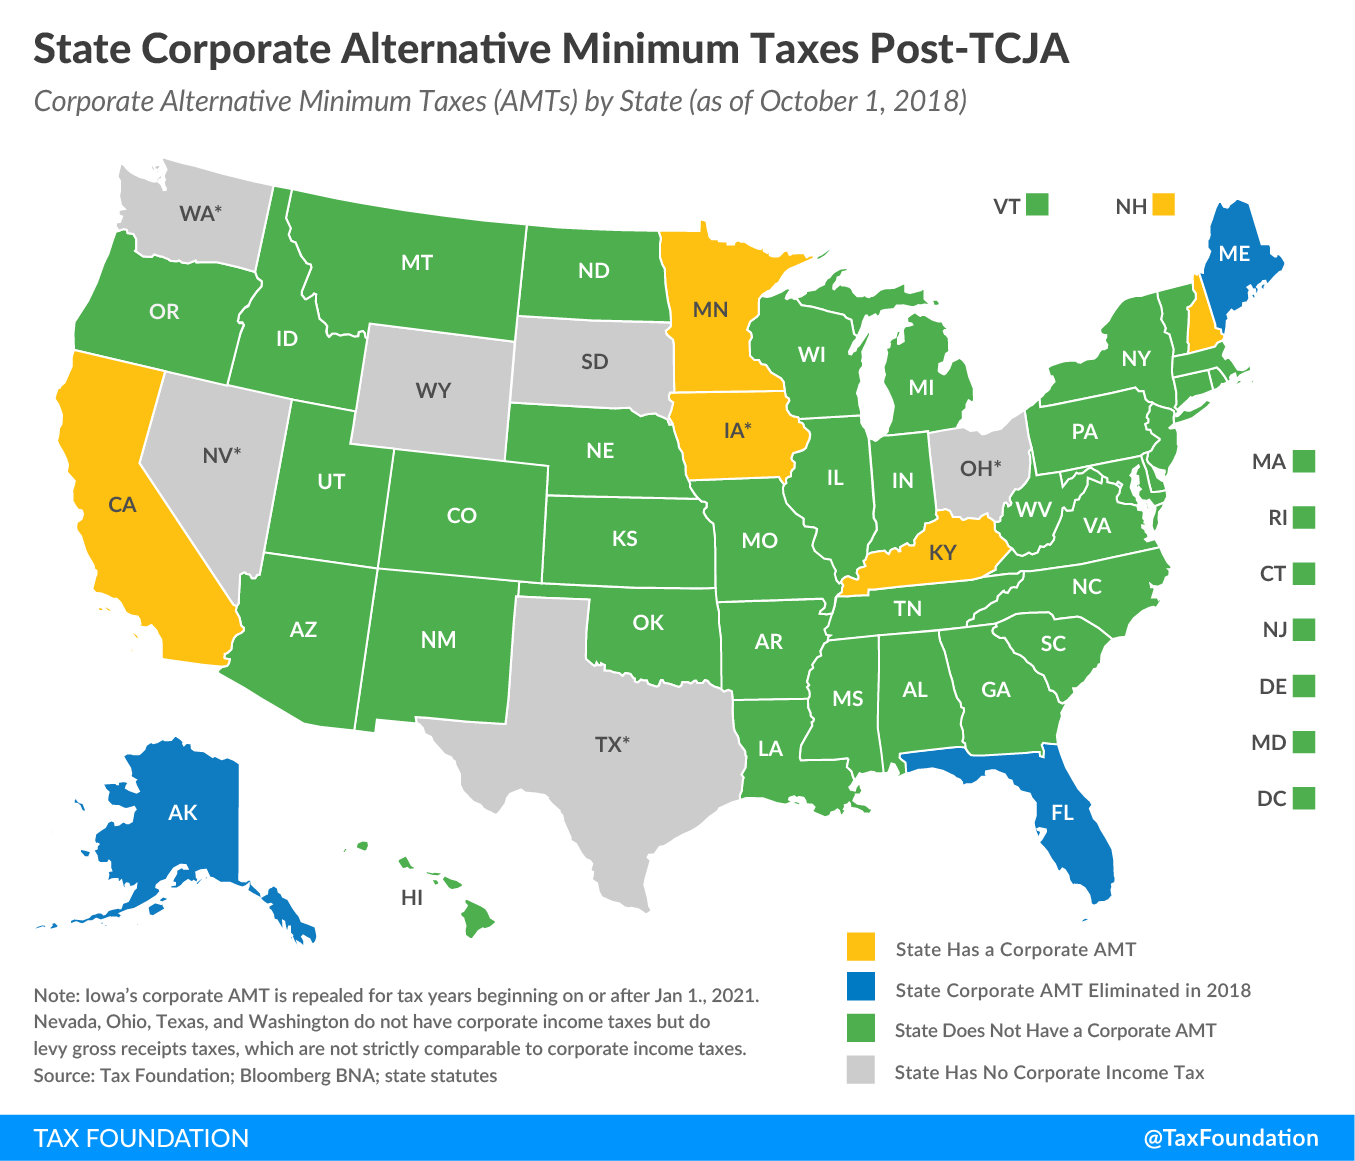 State Corporate Alternative Minimum Taxes Post-TCJA (AMTs)